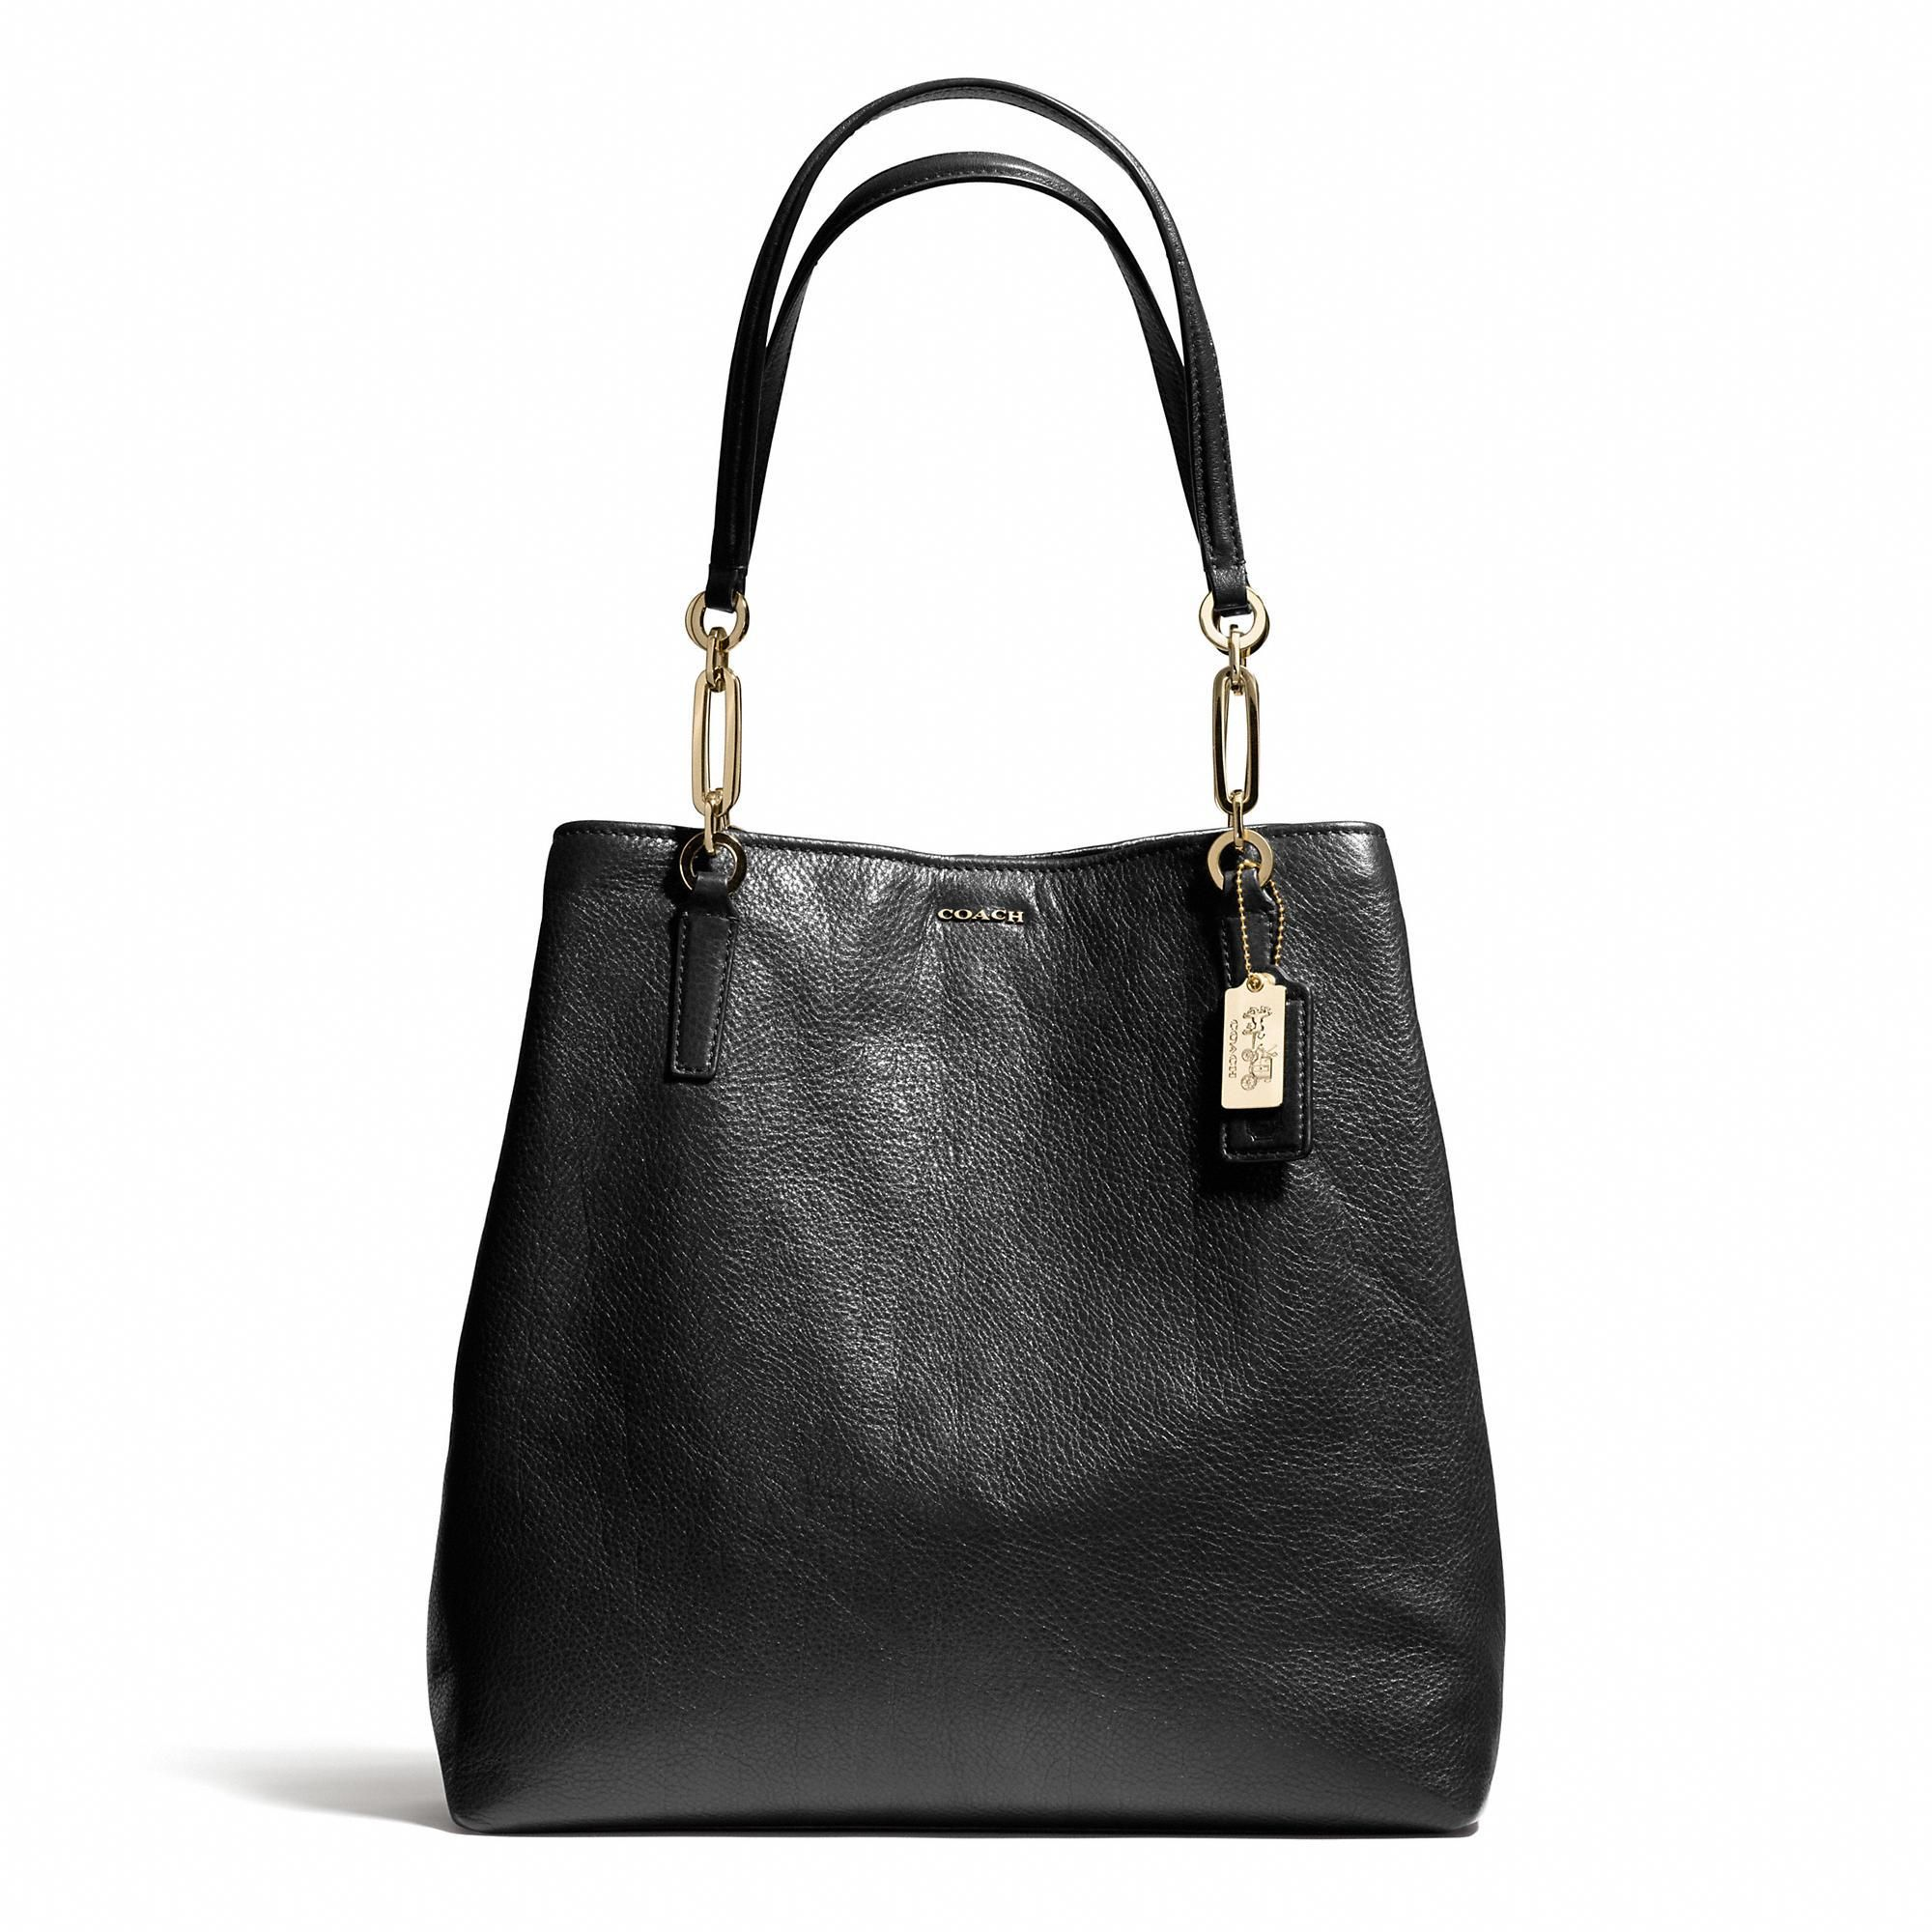 Give her style the coach madison northsouth tote in leather